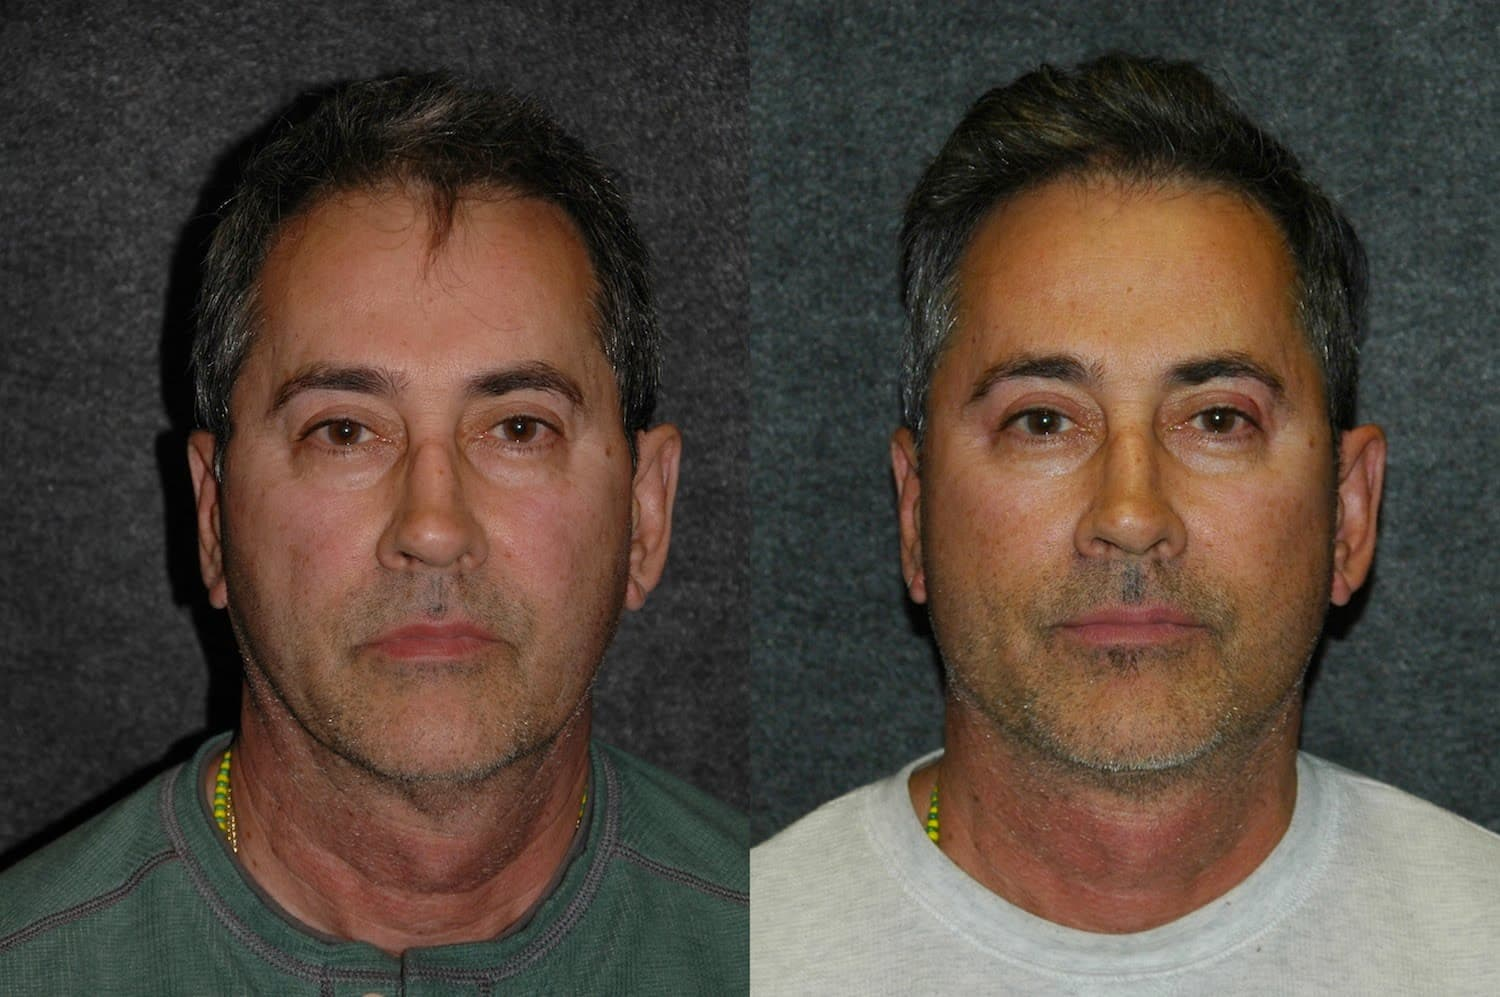 Before And After Facial Plastic Surgery Young Male photo - 1